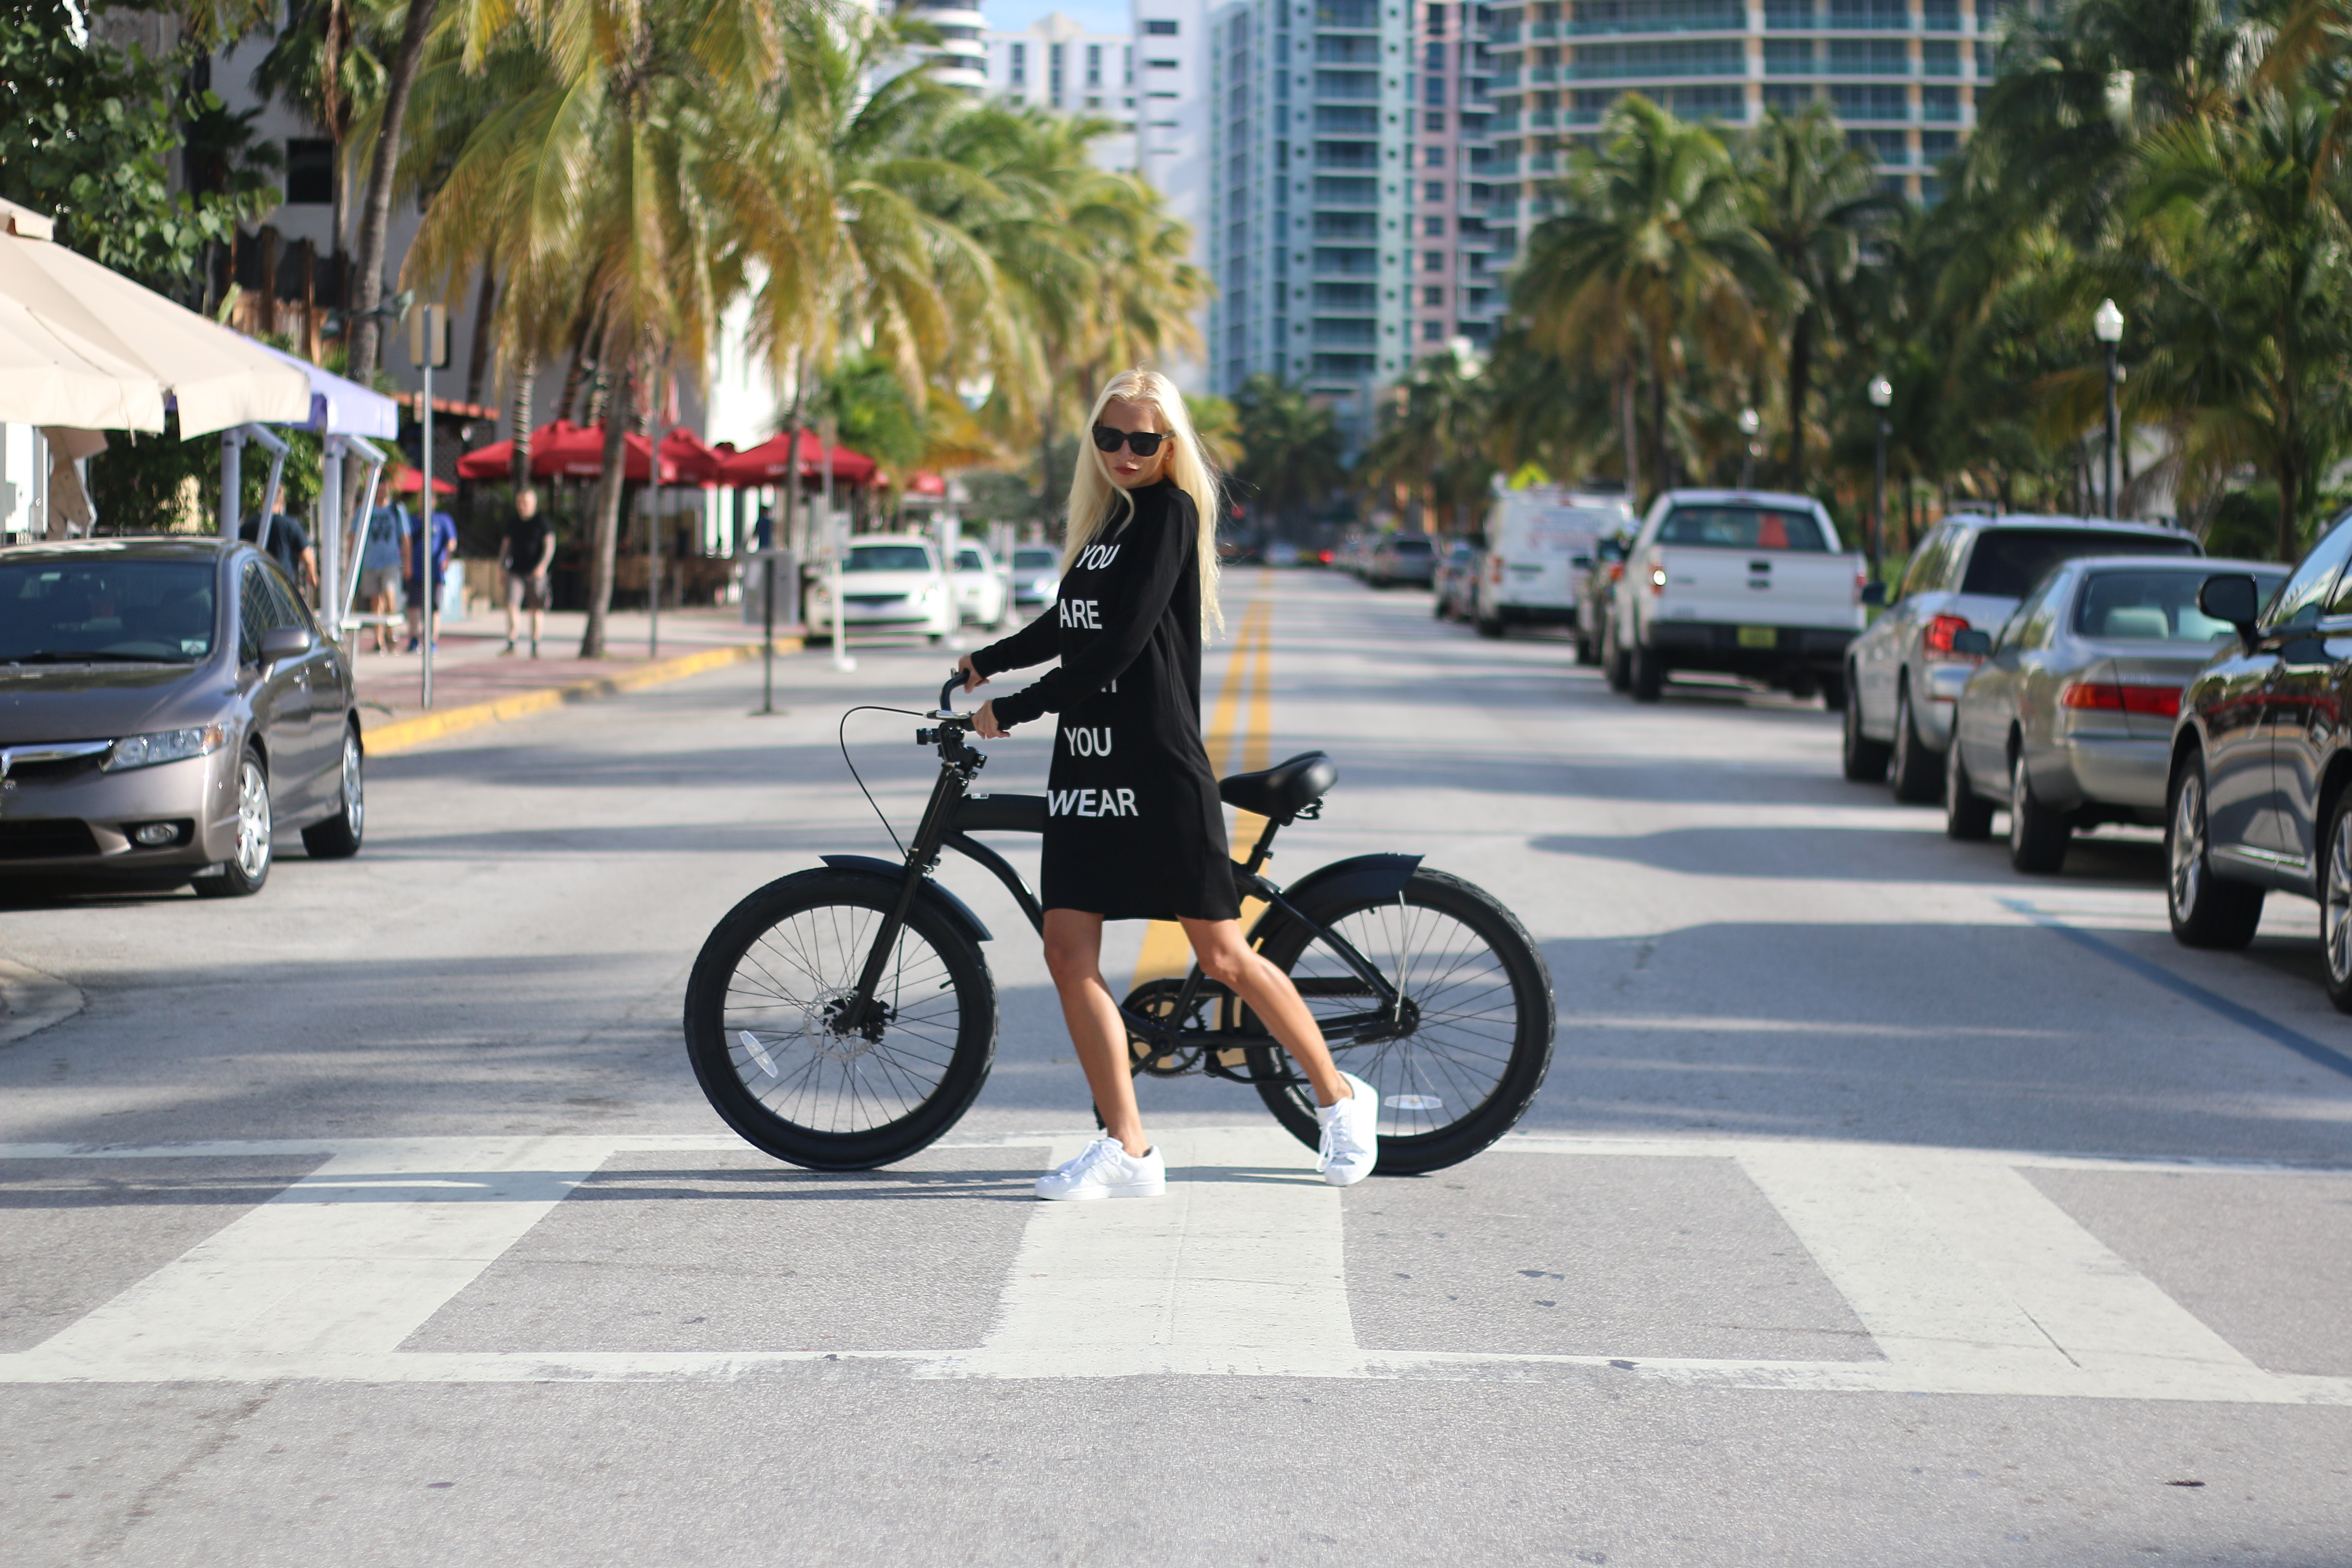 Woman In Black Long Sleeve Shirt Holding Bicycle, Bicycle, Pavement, Vehicles, Urban, HQ Photo